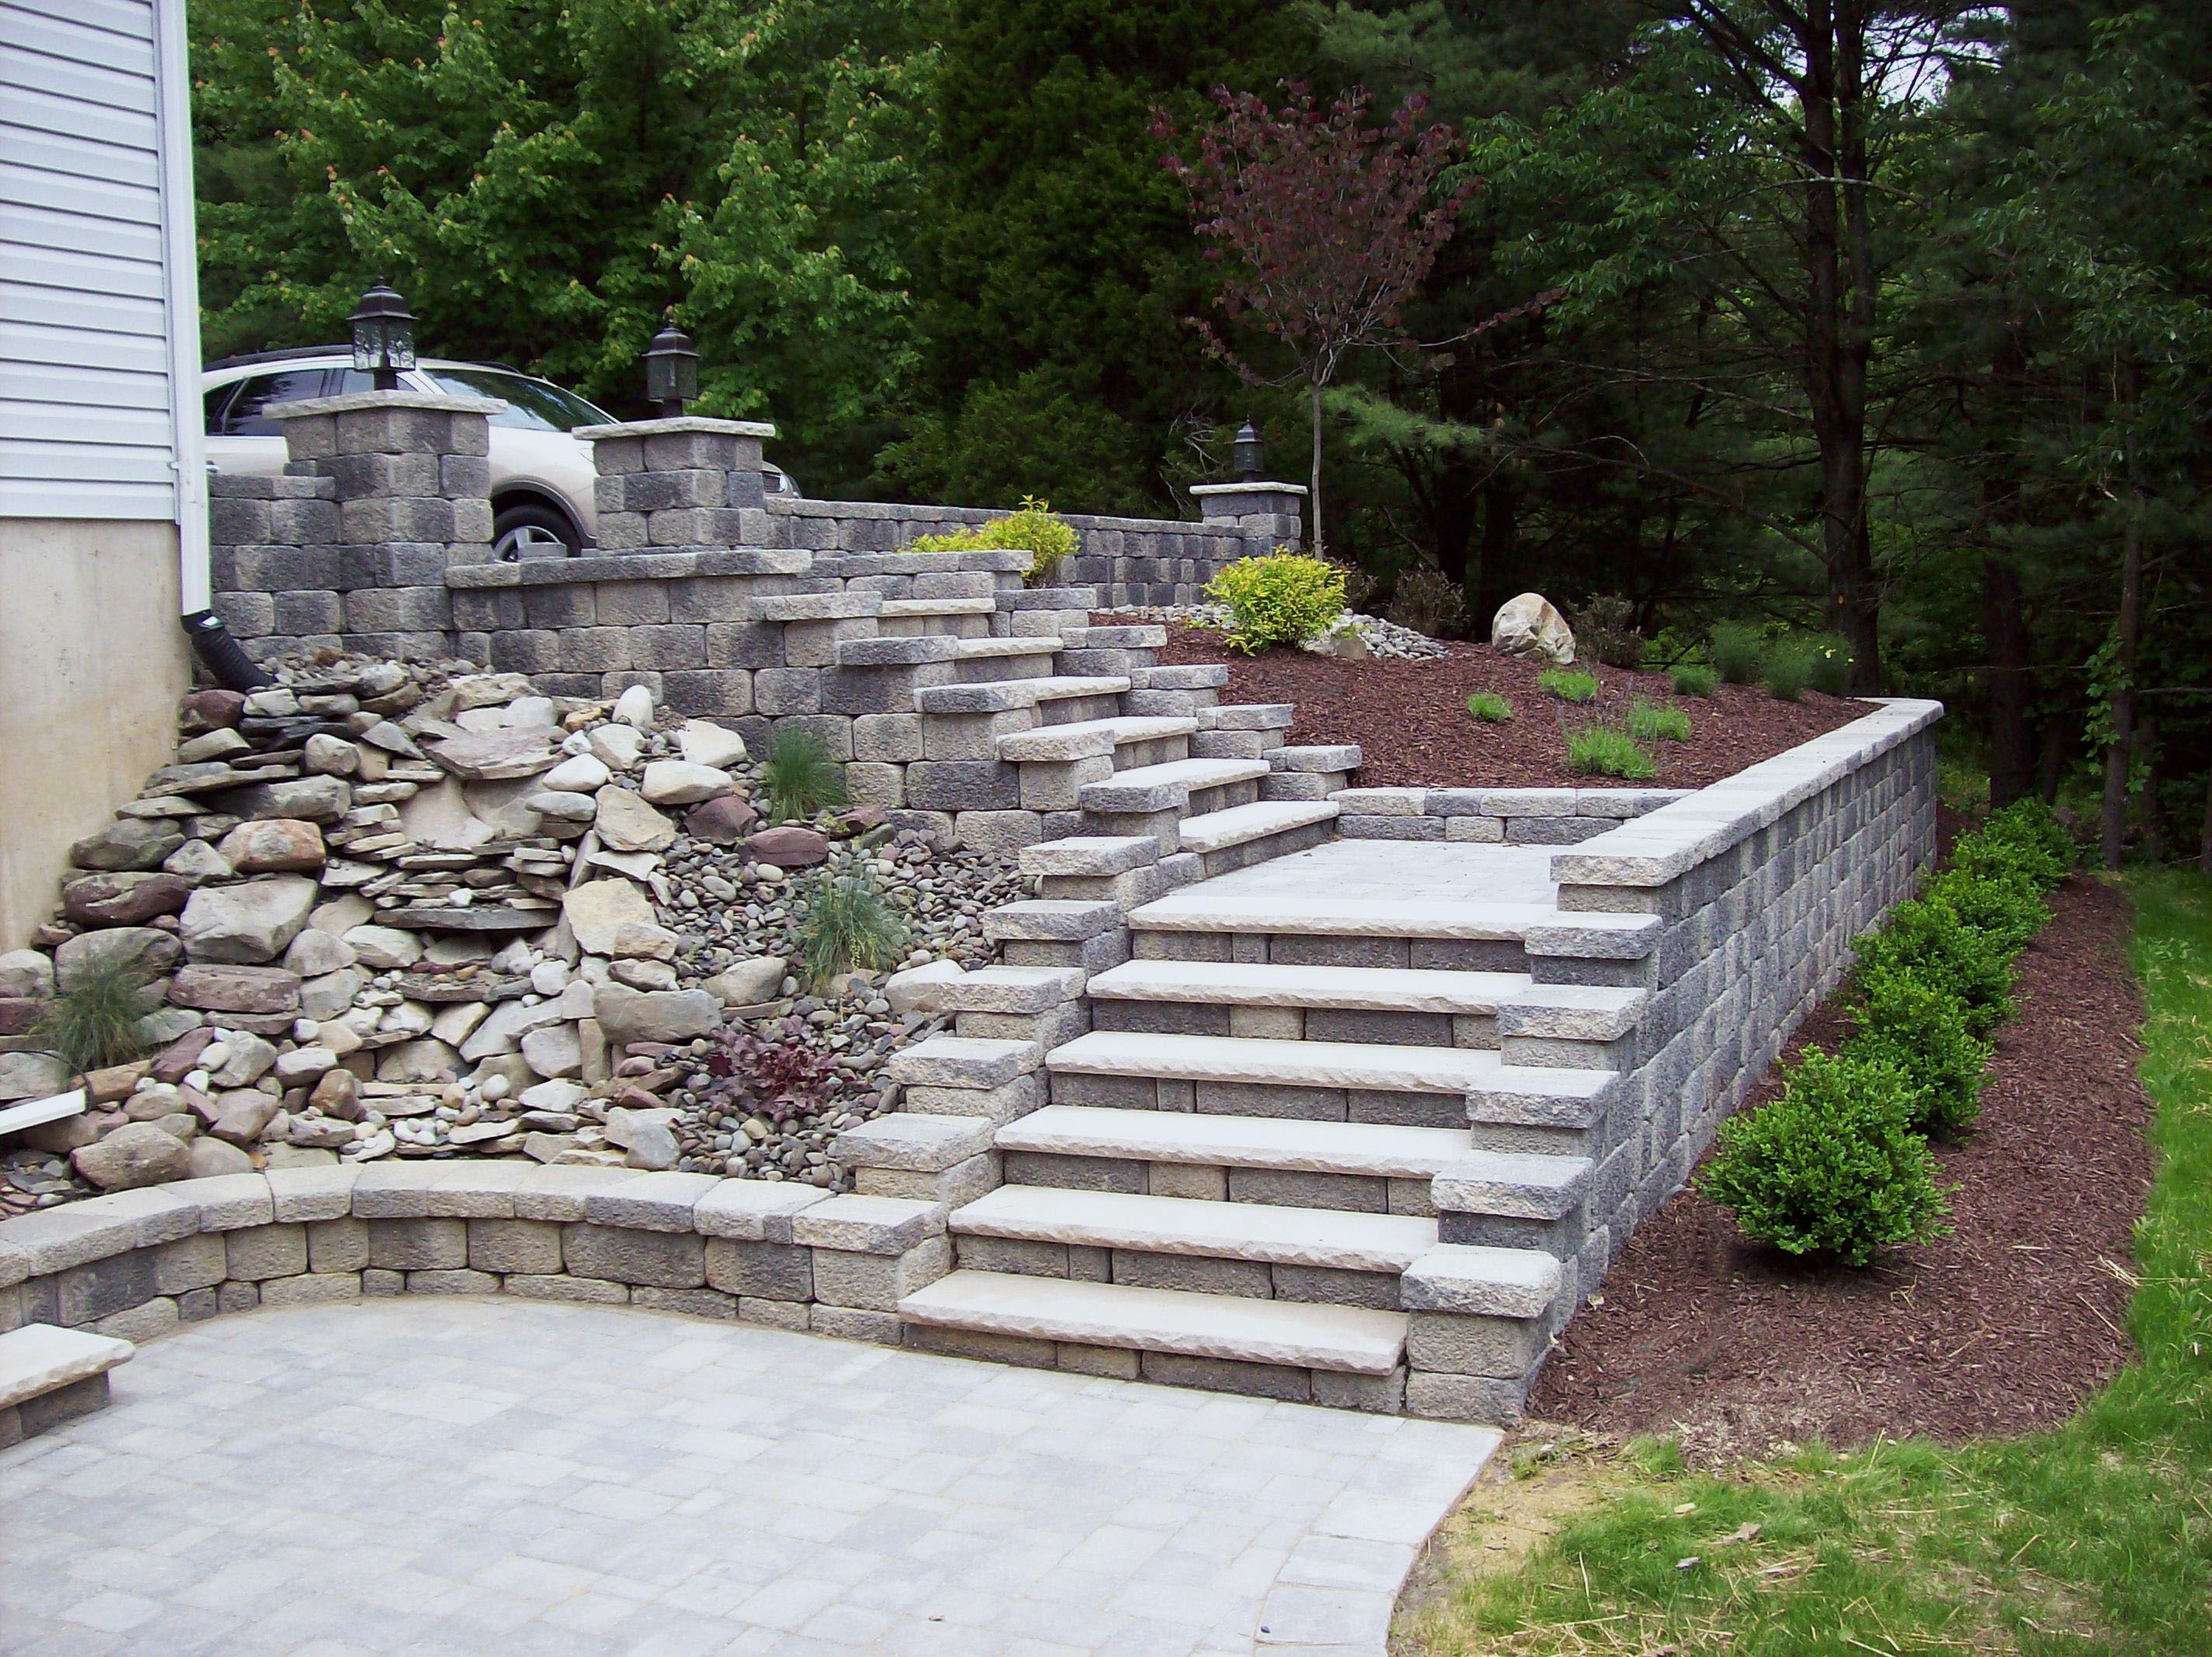 hardscape specialist specializing in design installation of brick